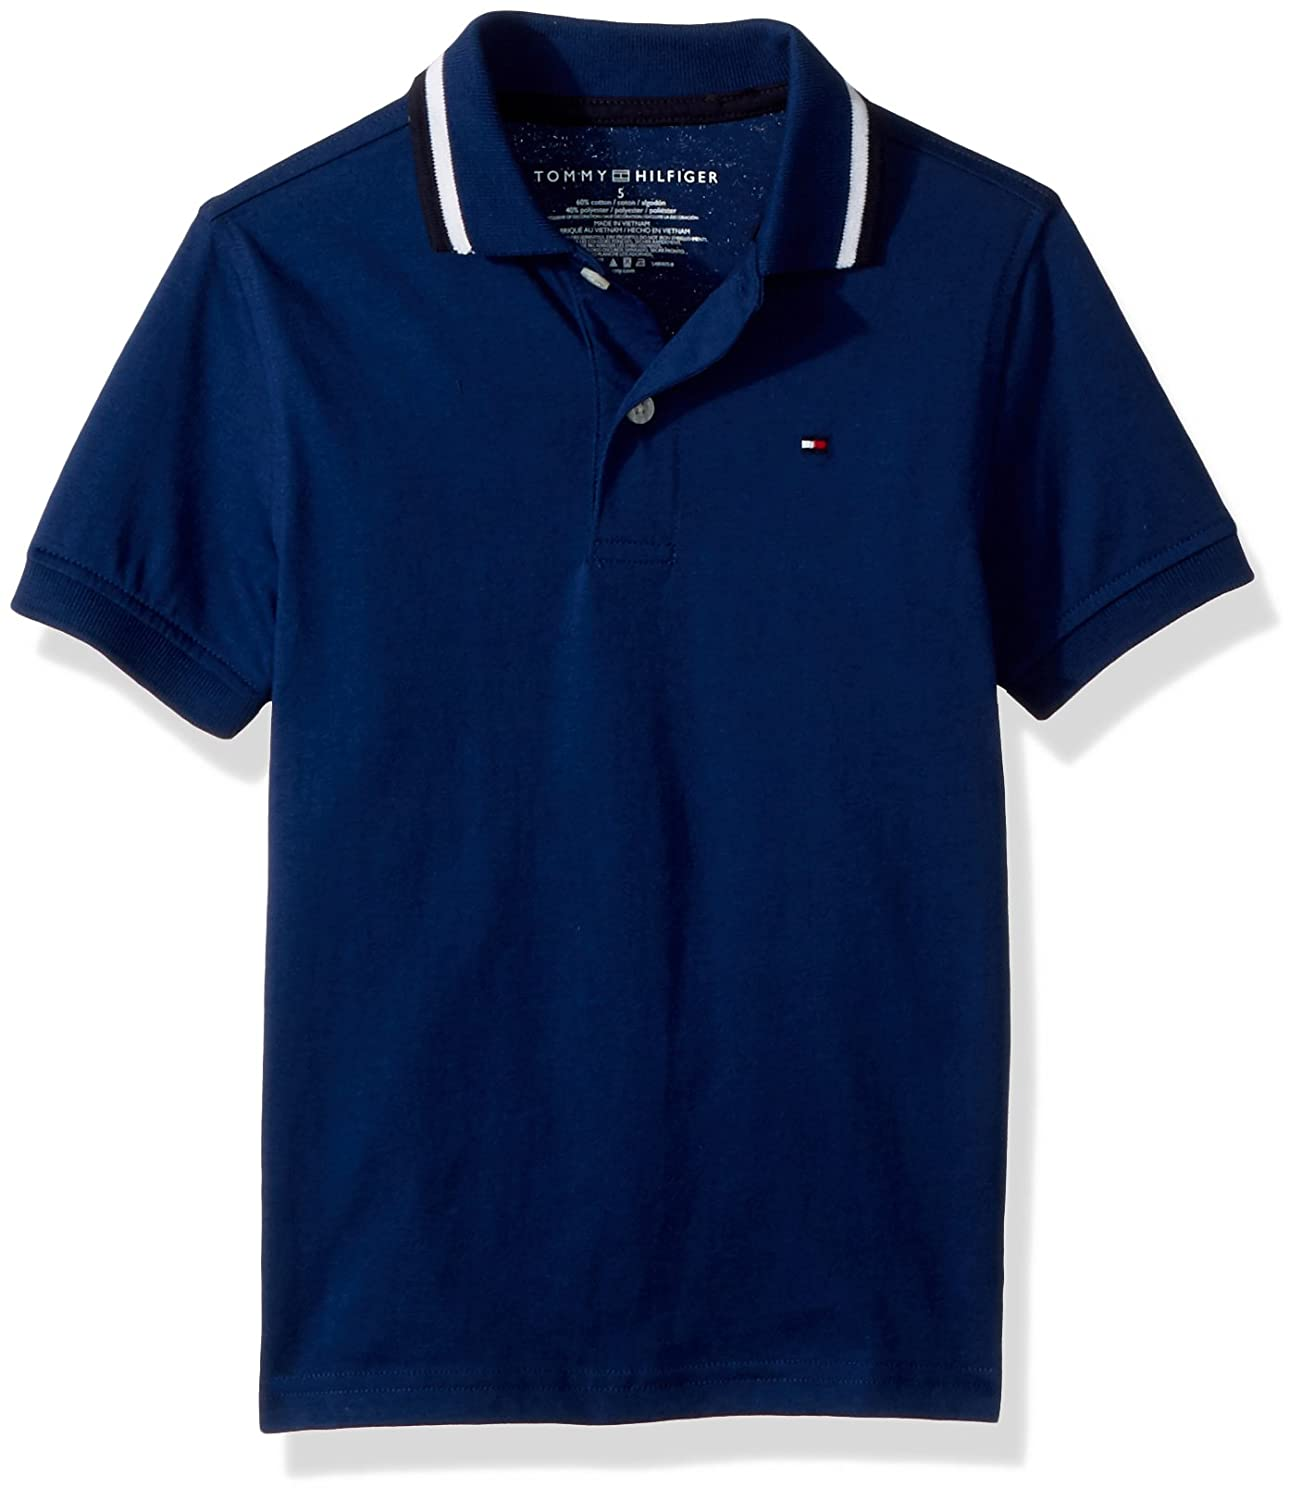 Tommy Hilfiger Boys Short Sleeve Performance Polo with Tipped Collar